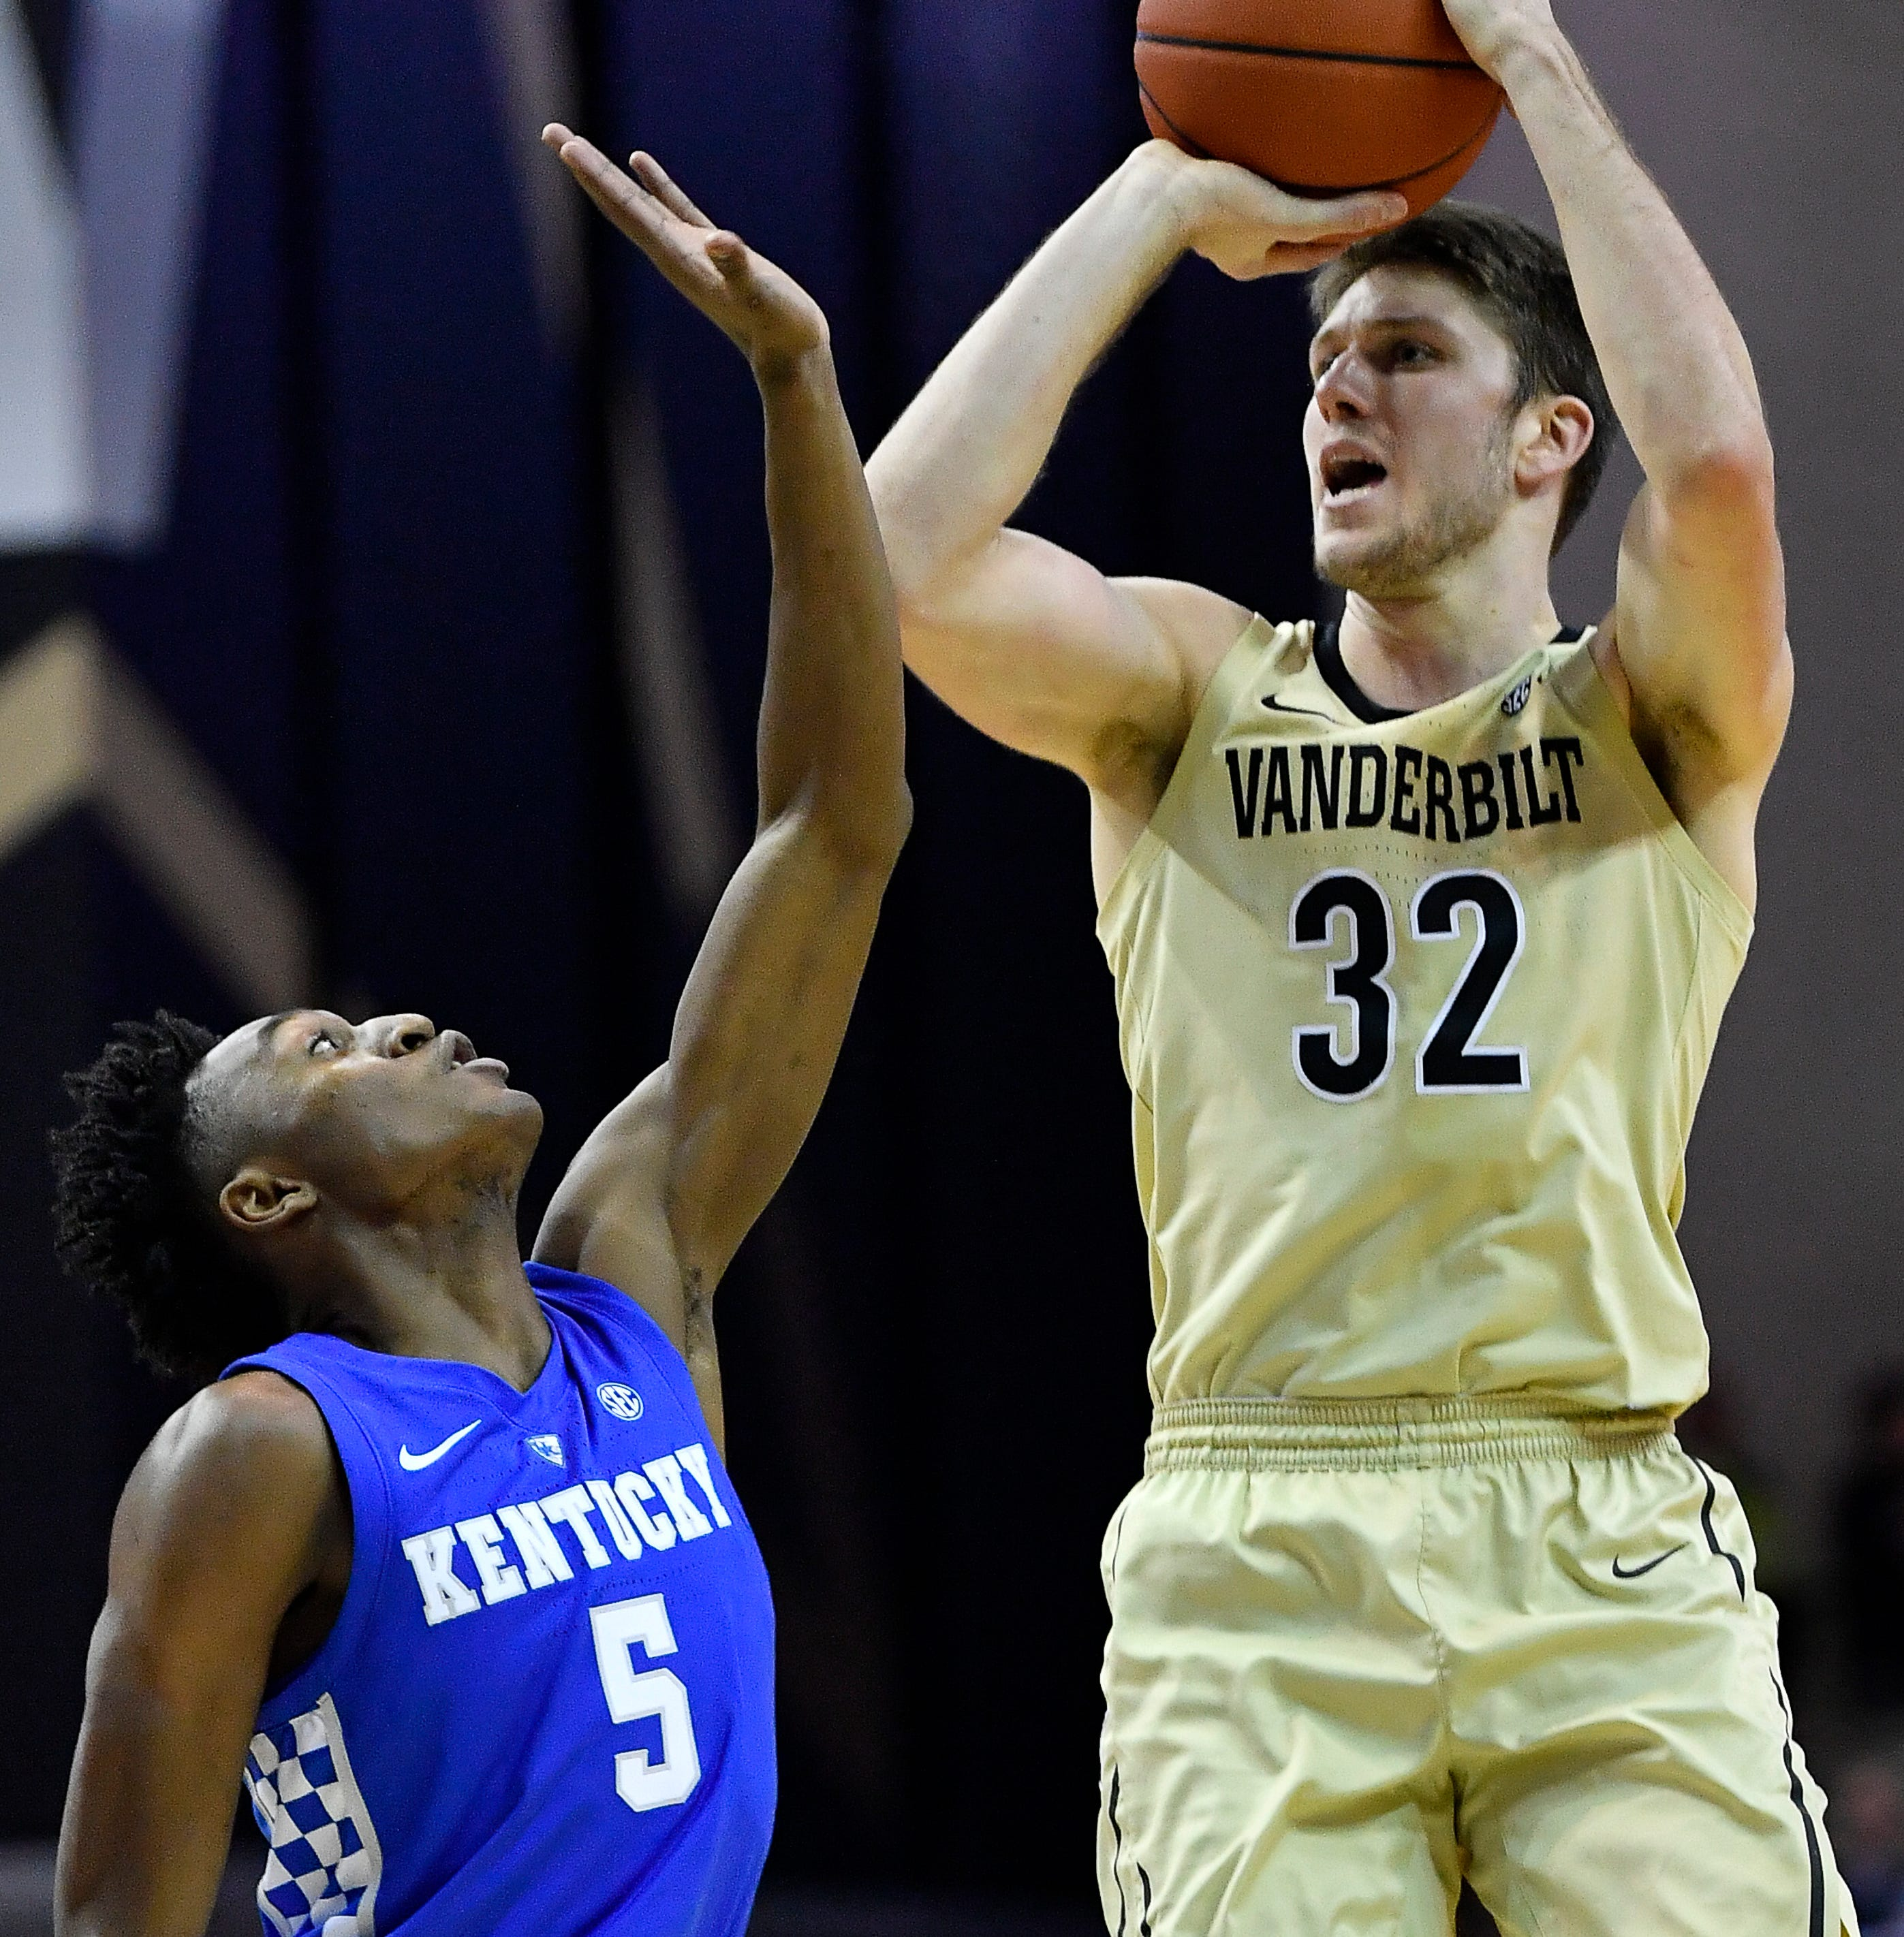 Vanderbilt's Matt Ryan transfers to Chattanooga, trims Jerry Stackhouse's first team